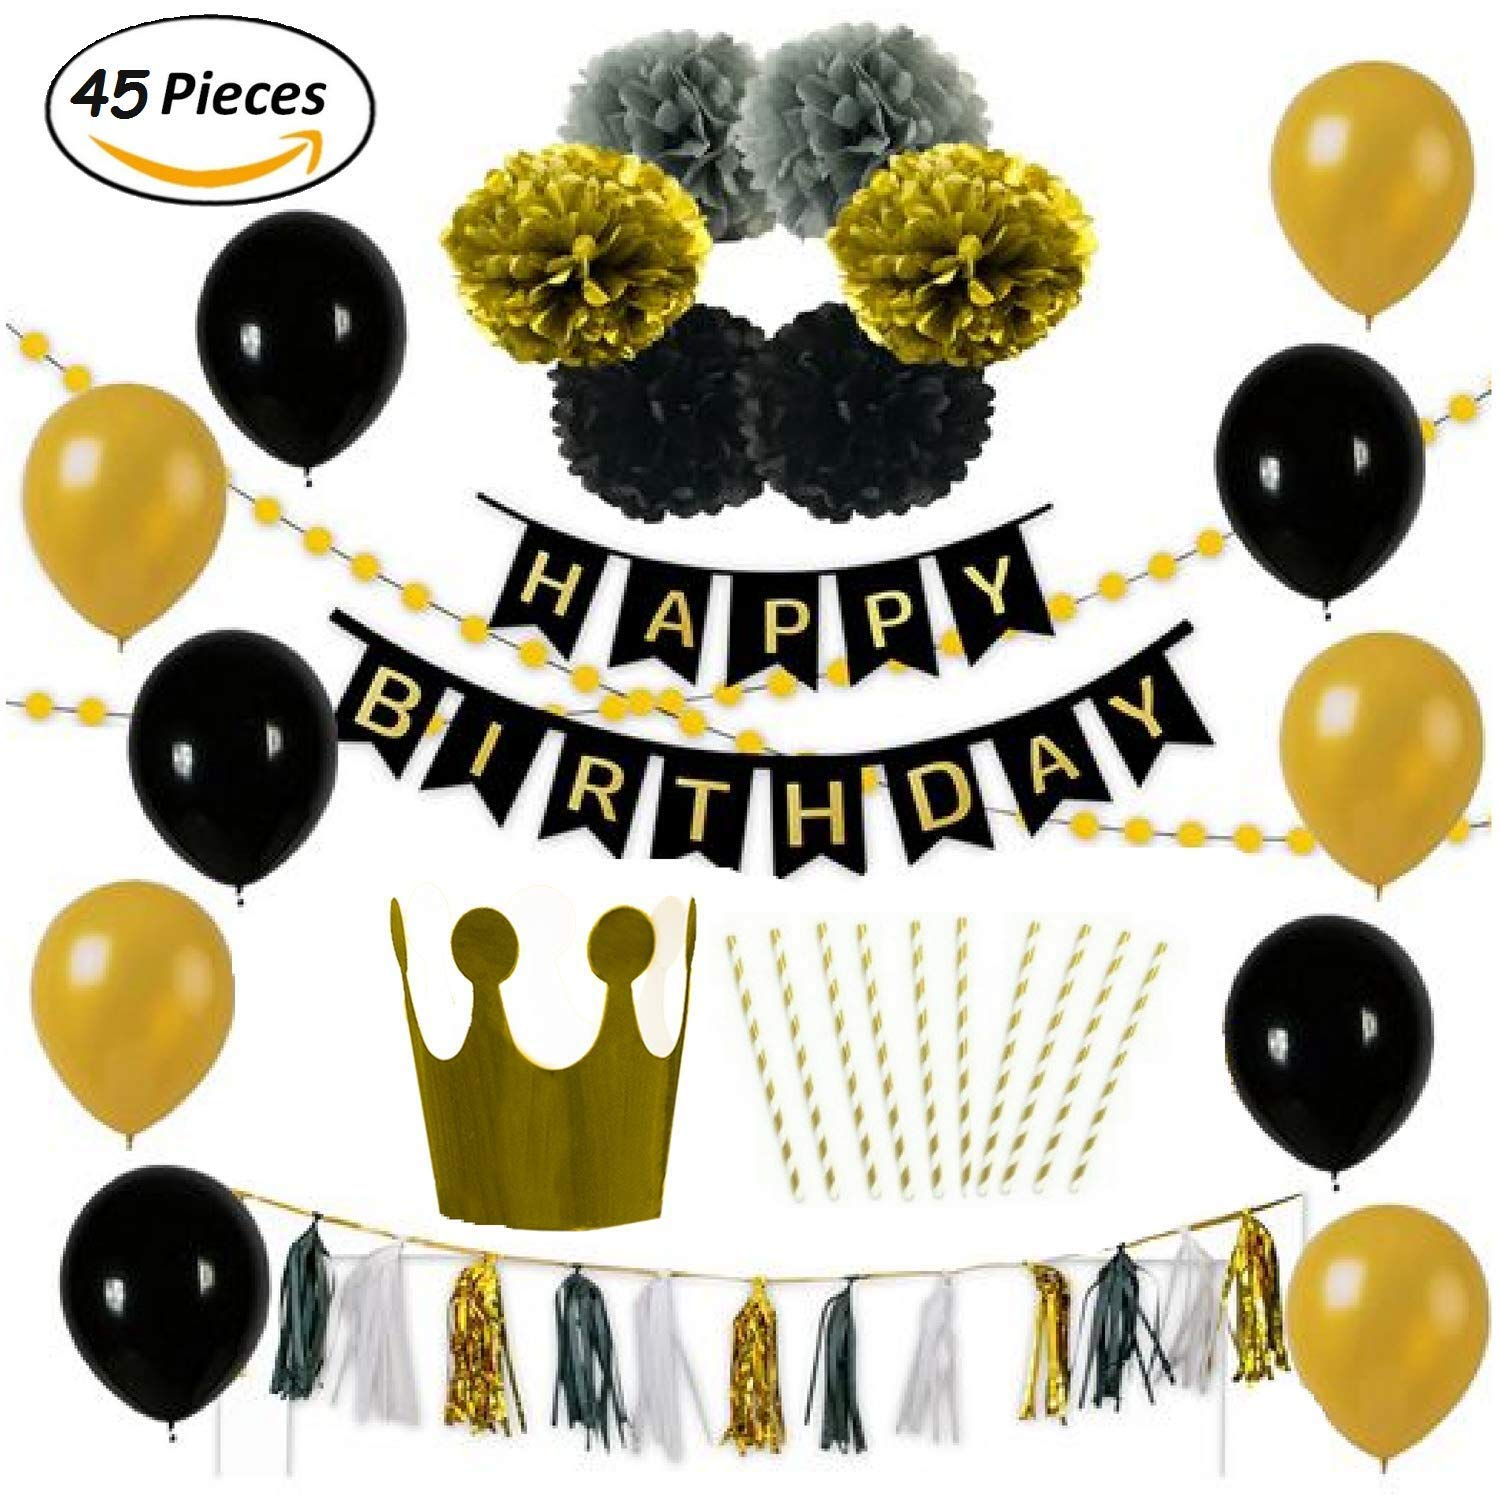 Birthday Party Decoration Pack 10 Gold Black Balloons 6 Grey Paper Pompoms 1 Free Hat And Straws 15 White Tassels 2 Set